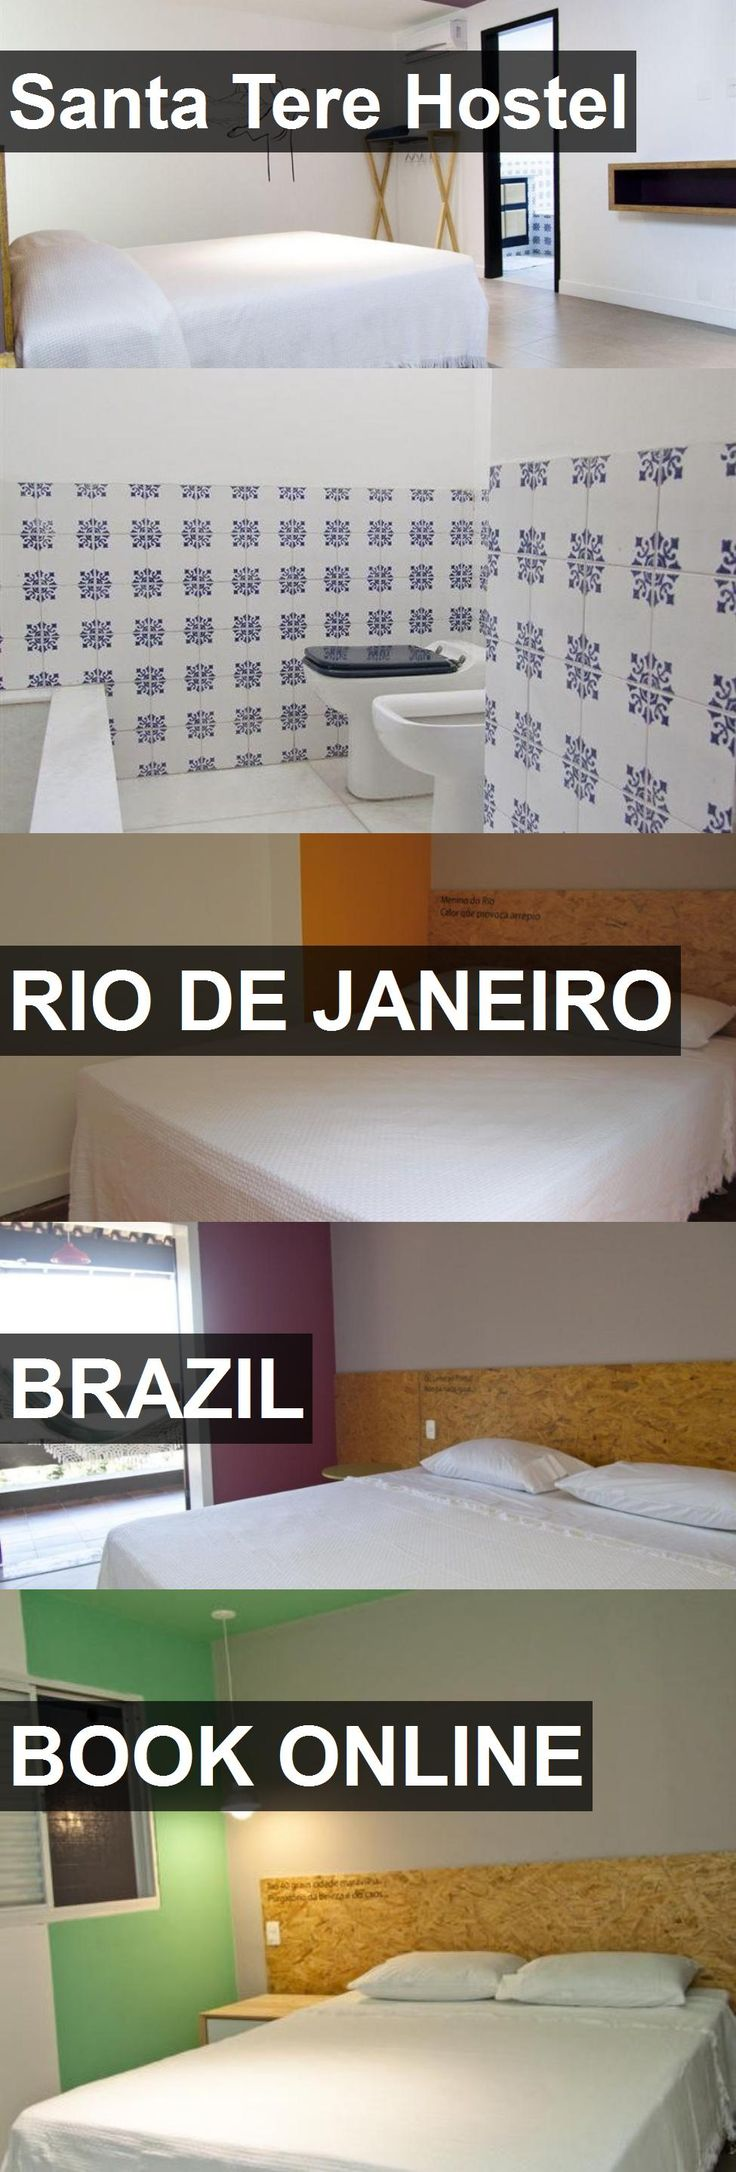 Hotel Santa Tere Hostel in Rio De Janeiro, Brazil. For more information, photos, reviews and best prices please follow the link. #Brazil #RioDeJaneiro #SantaTereHostel #hotel #travel #vacation